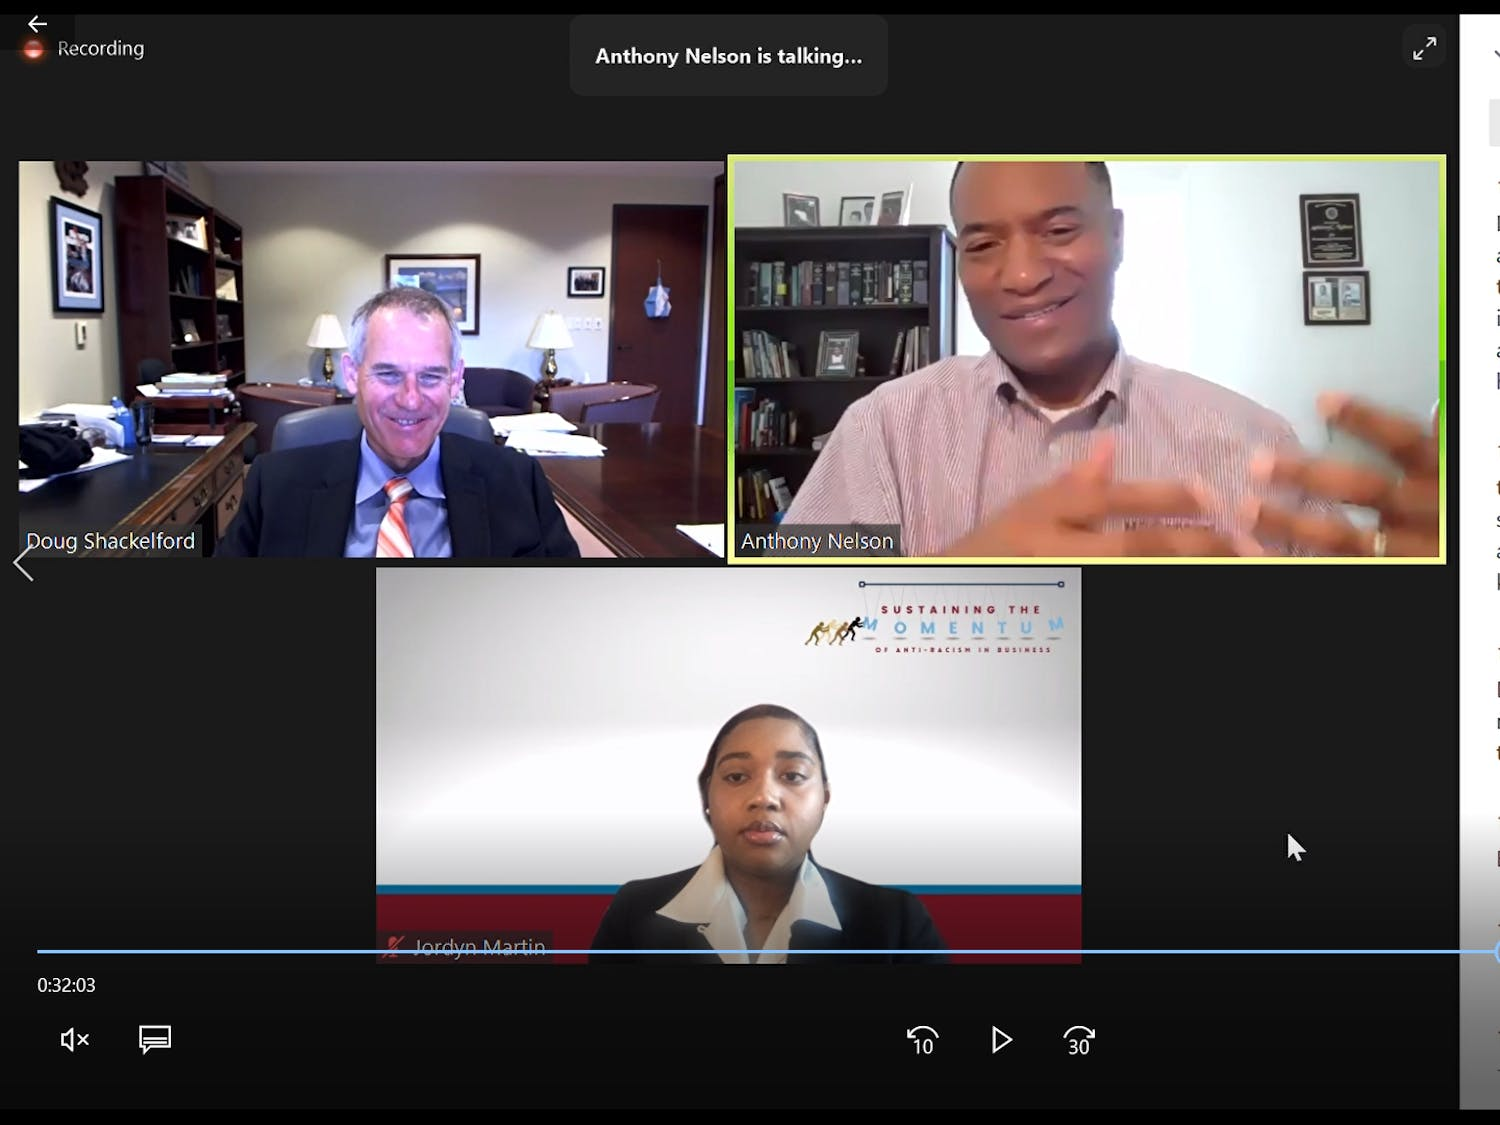 UNC and North Carolina Central co-hosted a virtual symposium to discuss racism in business and how to address it.